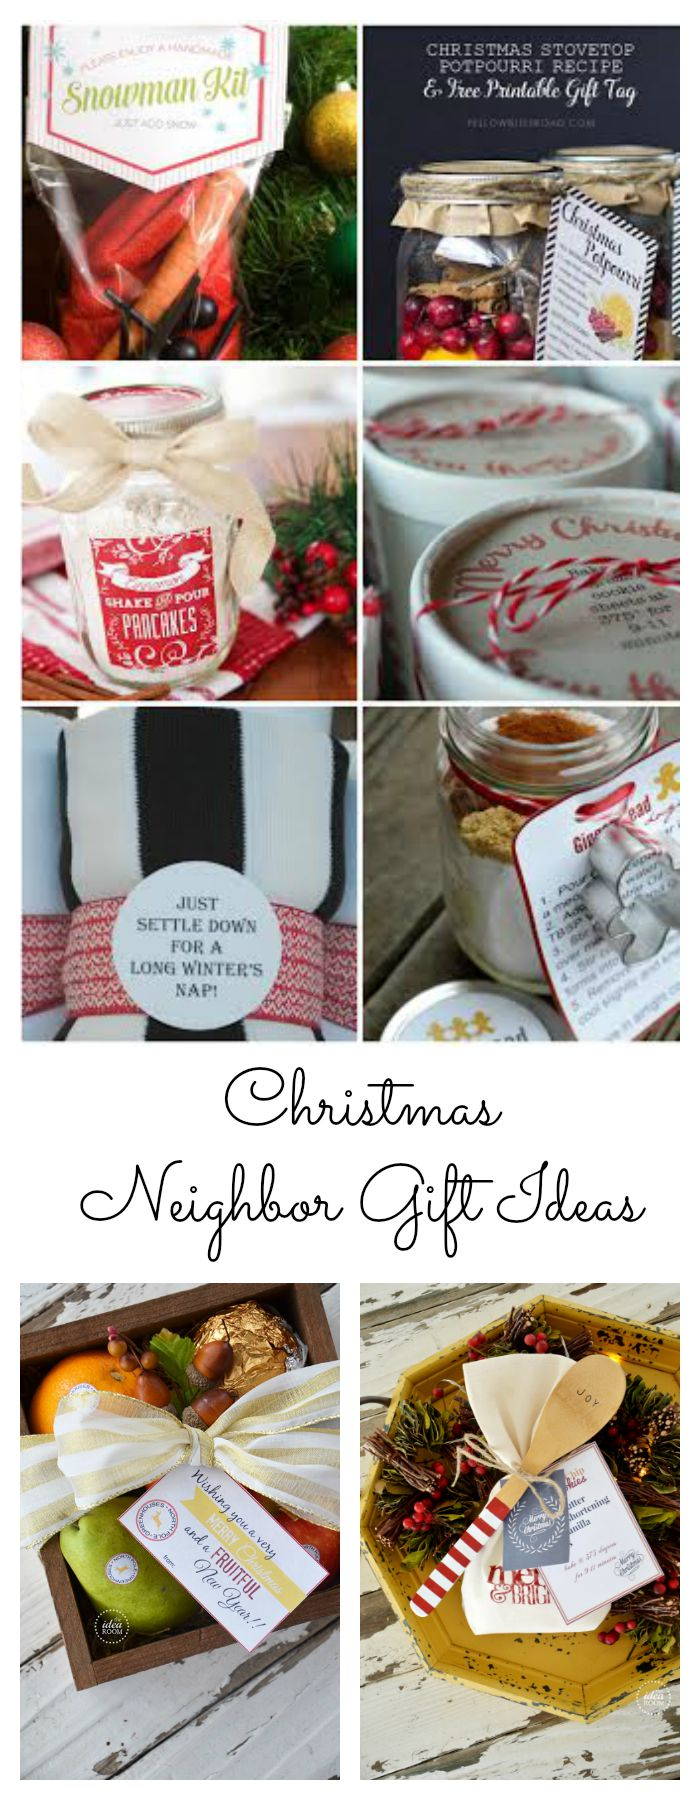 Christmas-Neighbor-Gift-Ideas